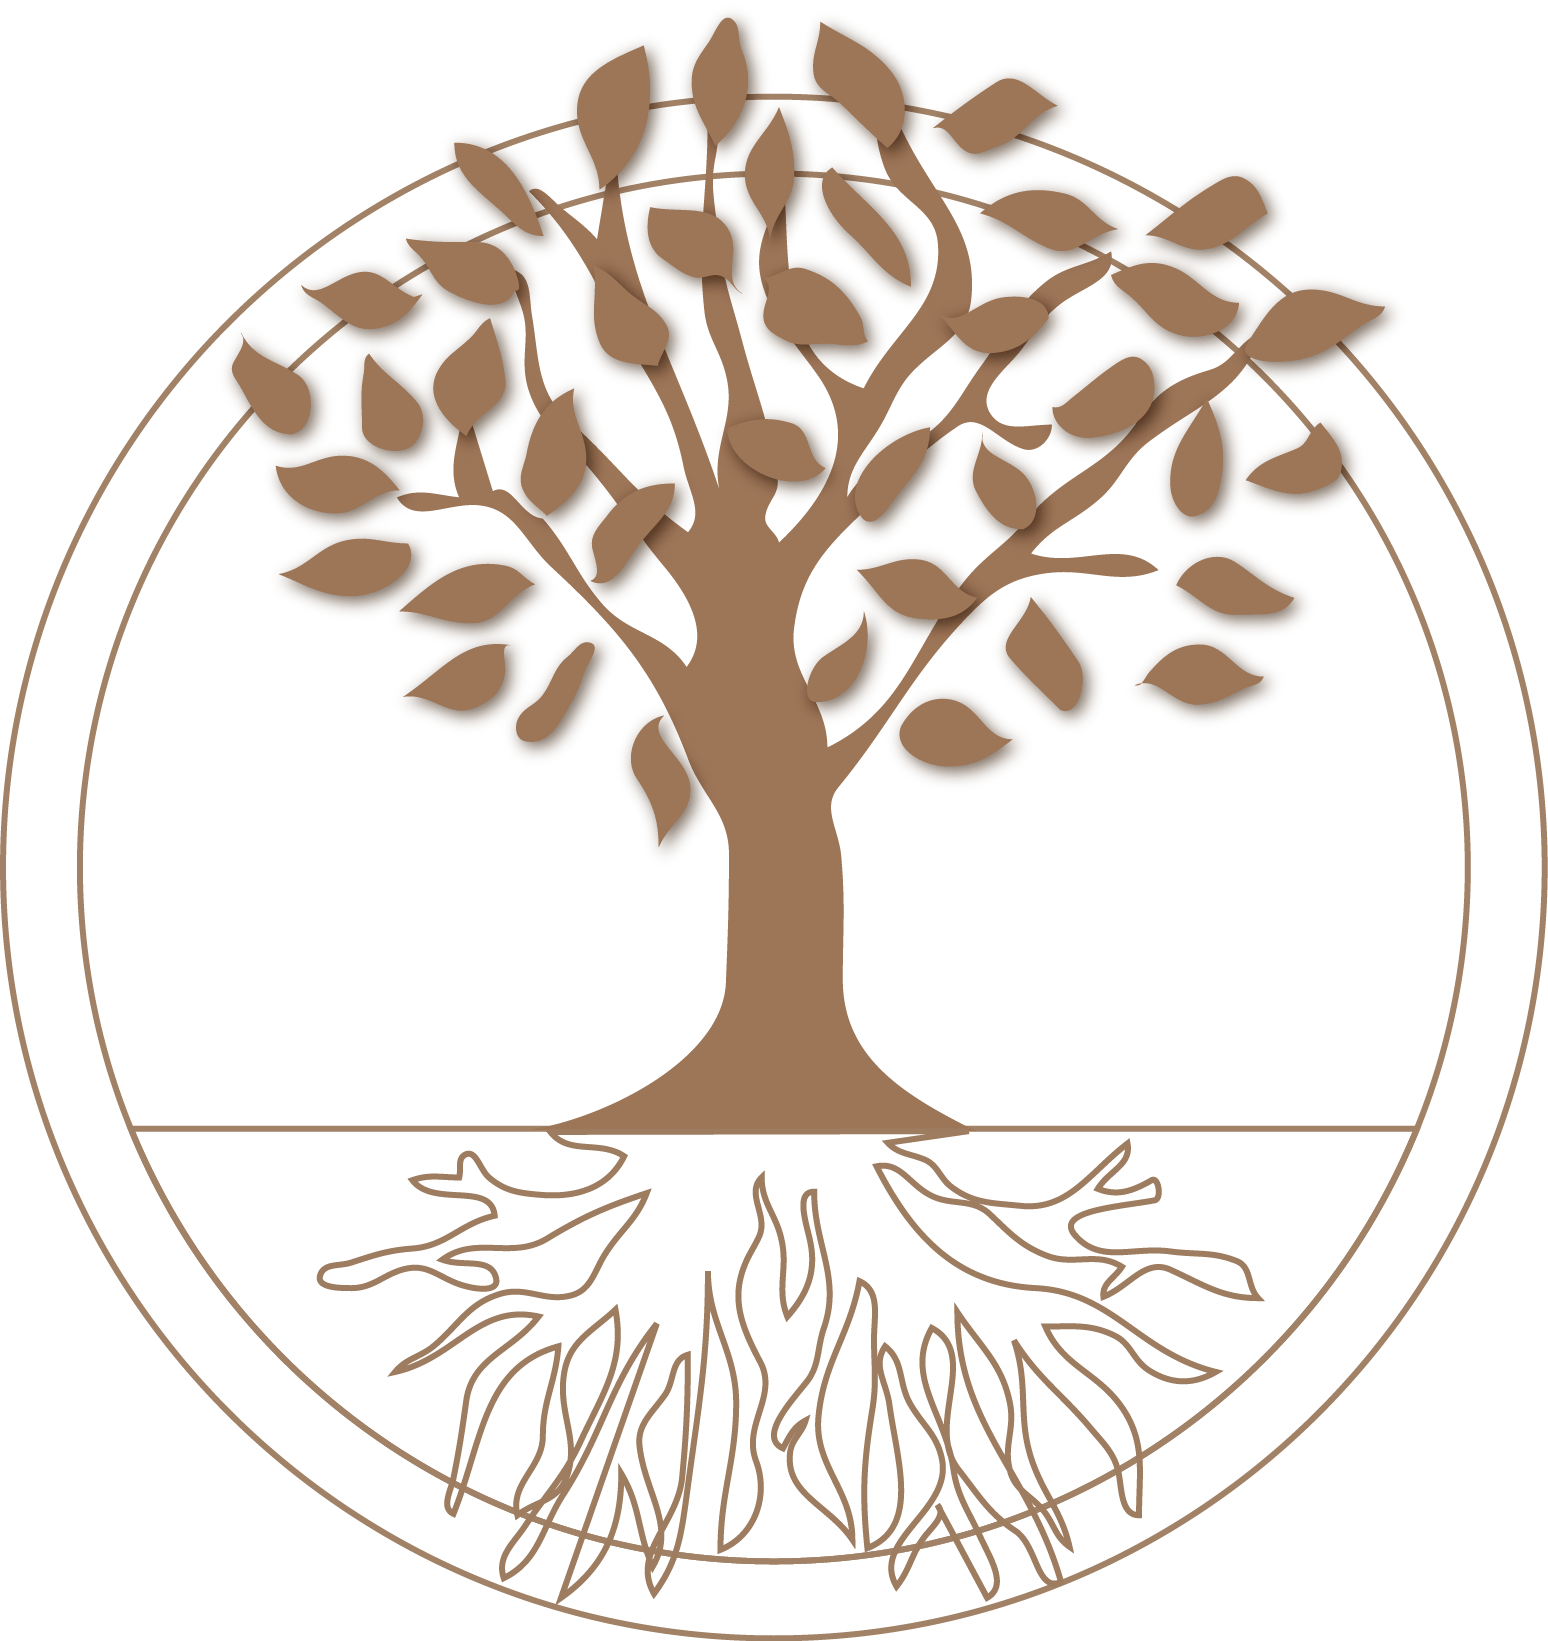 Orchard the . Roots clipart tree icon